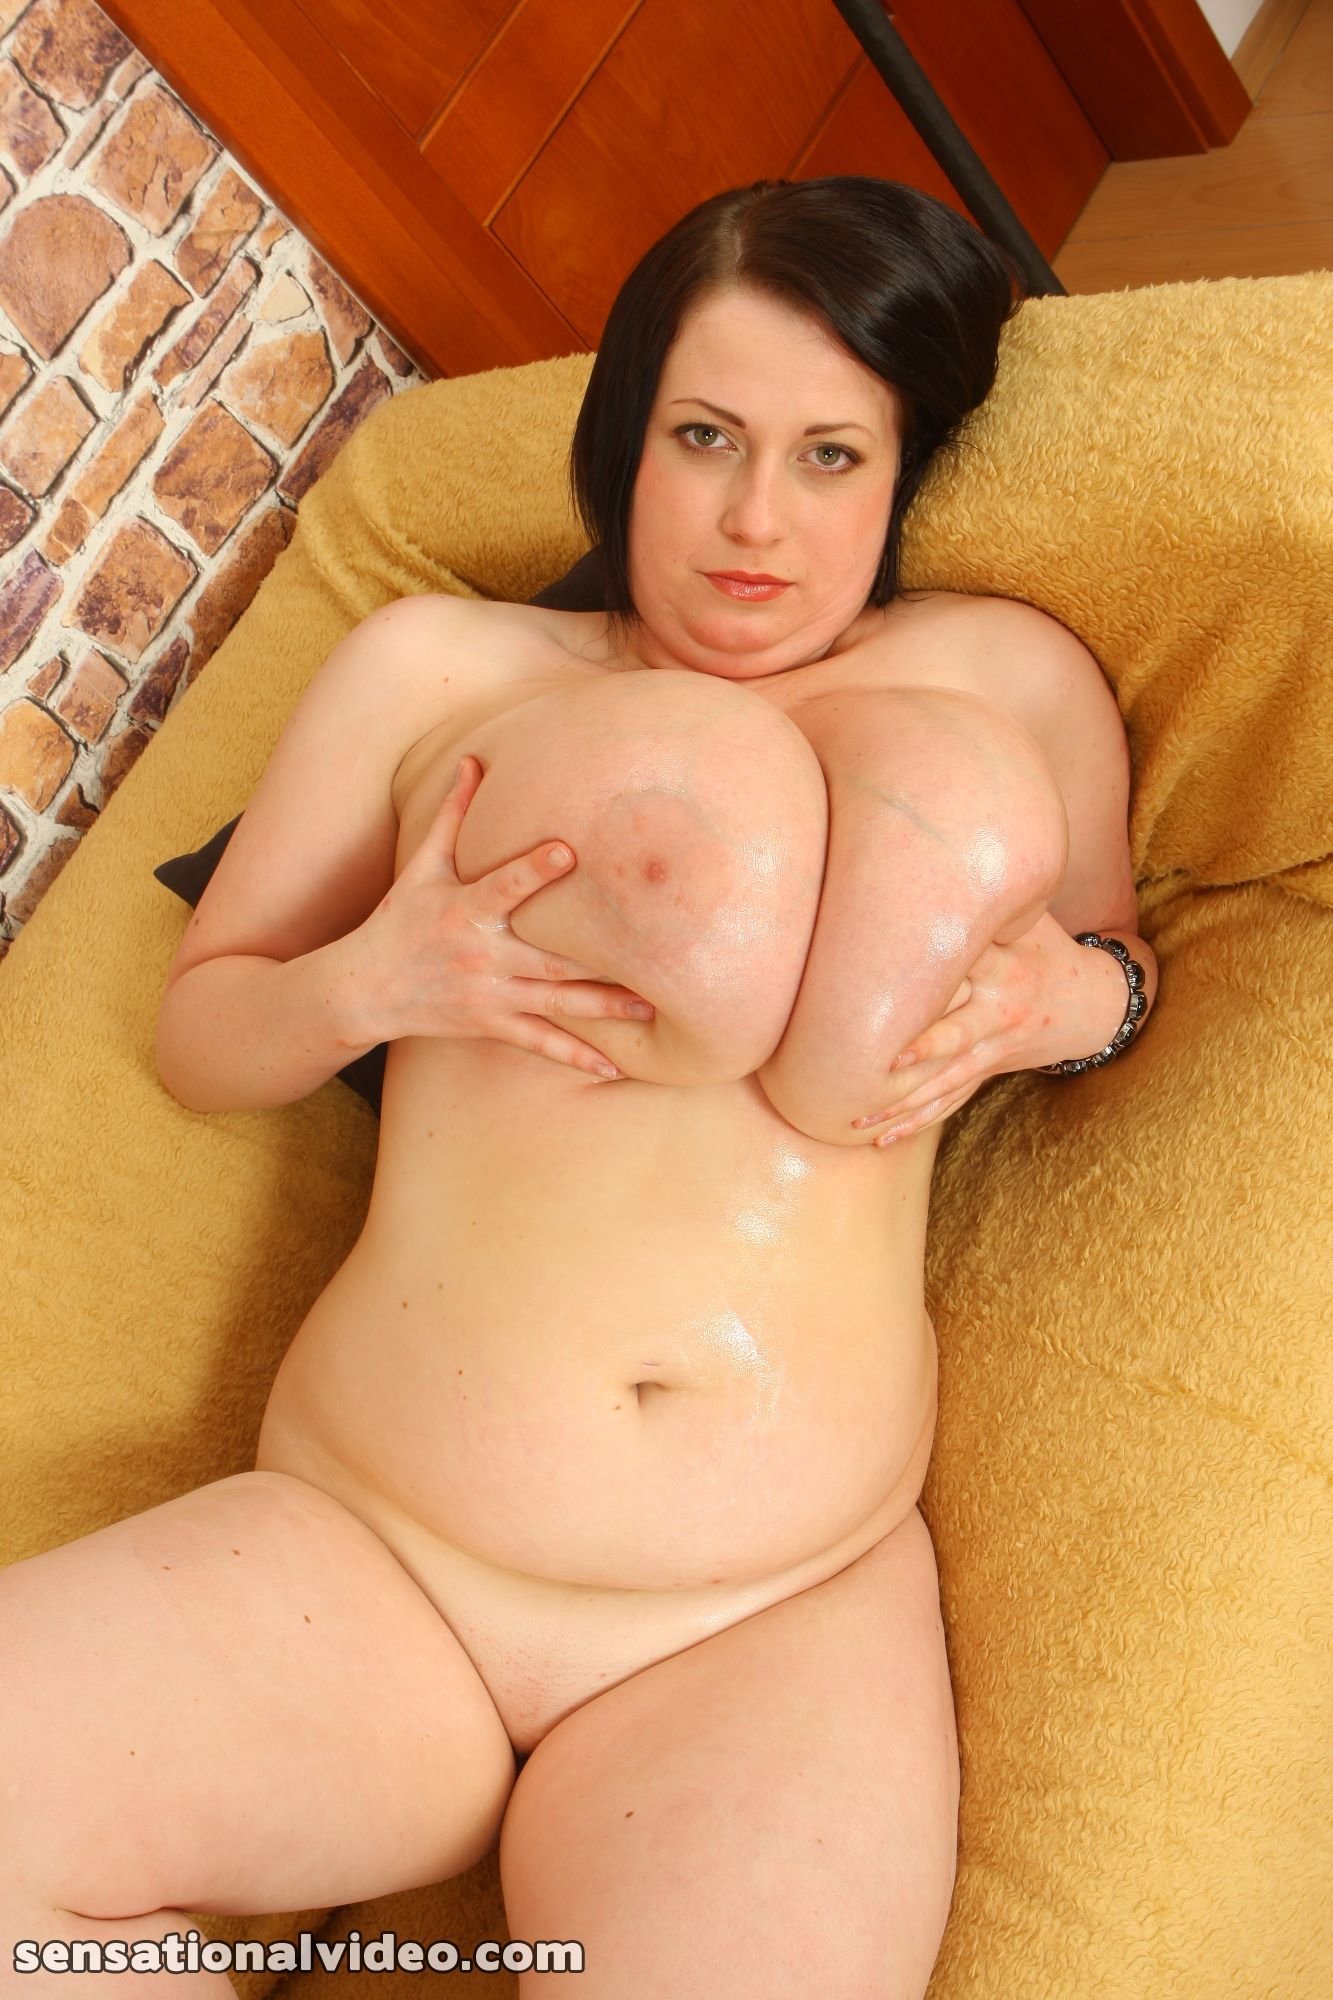 lesgalls spicytitties plumperpass gal535 pic 29